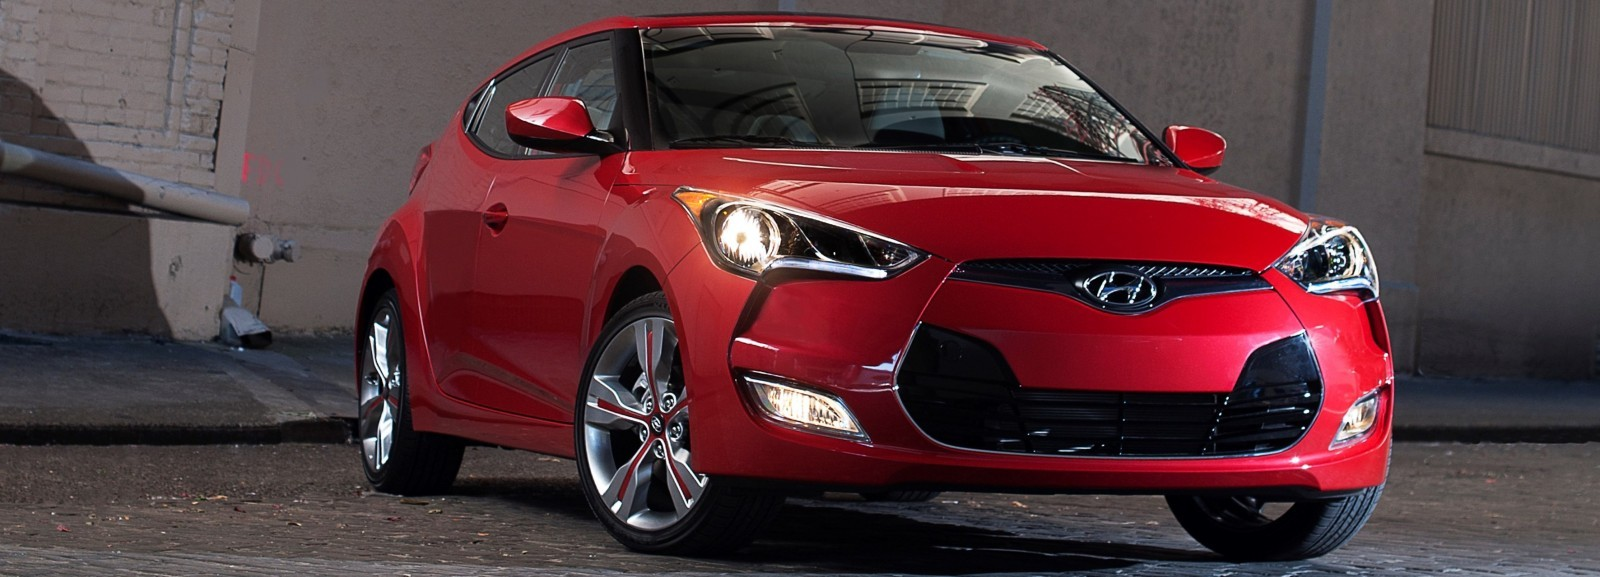 hyundai veloster r spec new for 2014 with nurburgring chassis tech. Black Bedroom Furniture Sets. Home Design Ideas